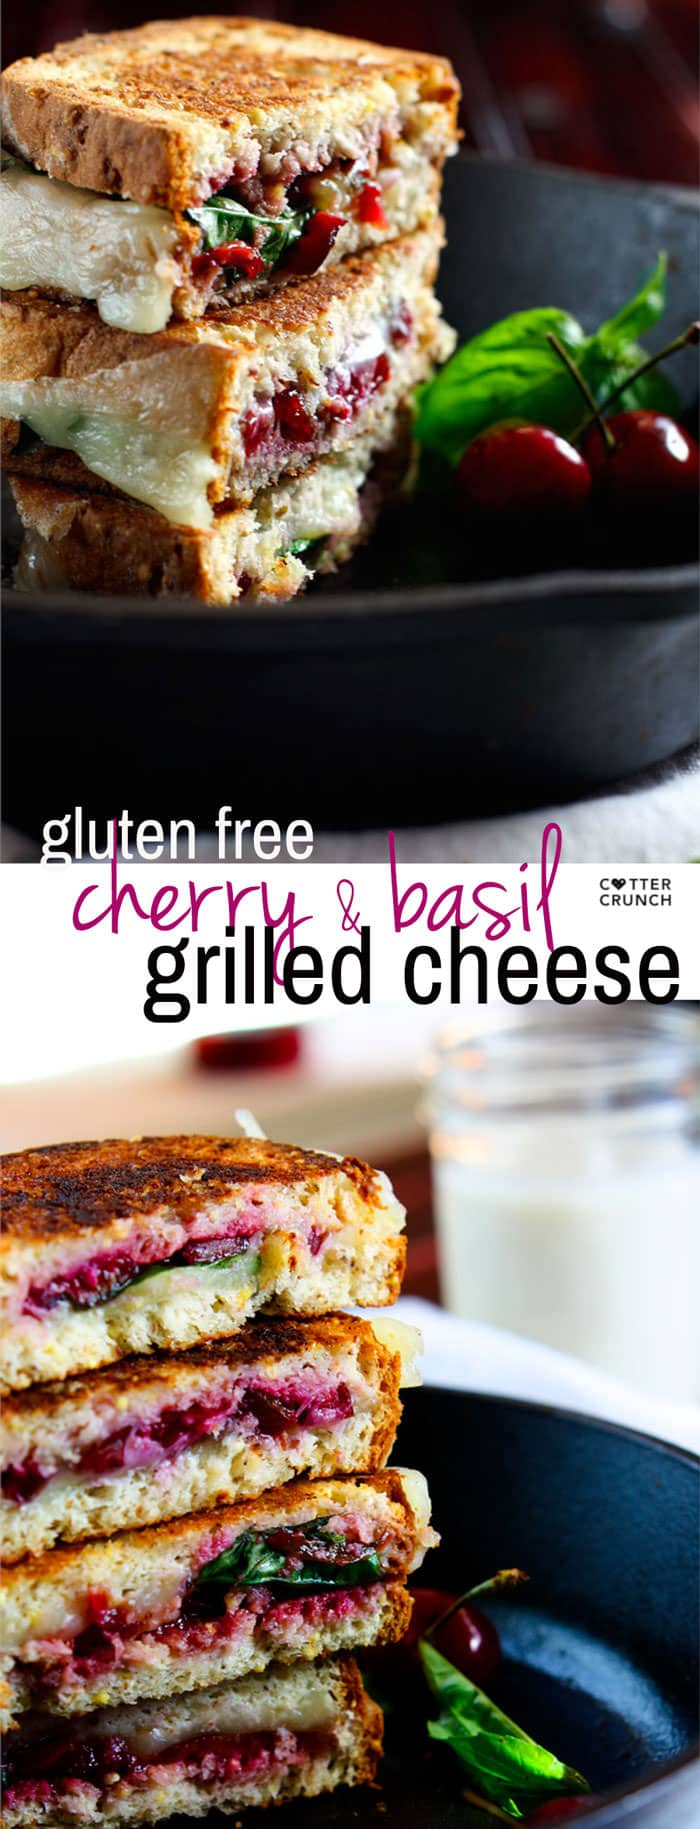 "Gluten Free Cherry Basil and Provolone Grilled Cheese. A healthy ""gourmet"" recovery meal with good carbs, protein, fats and anti-inflammatory rich nutrients. A fun twist on the original grilled cheese sandwich that your whole family will love, kids included!"